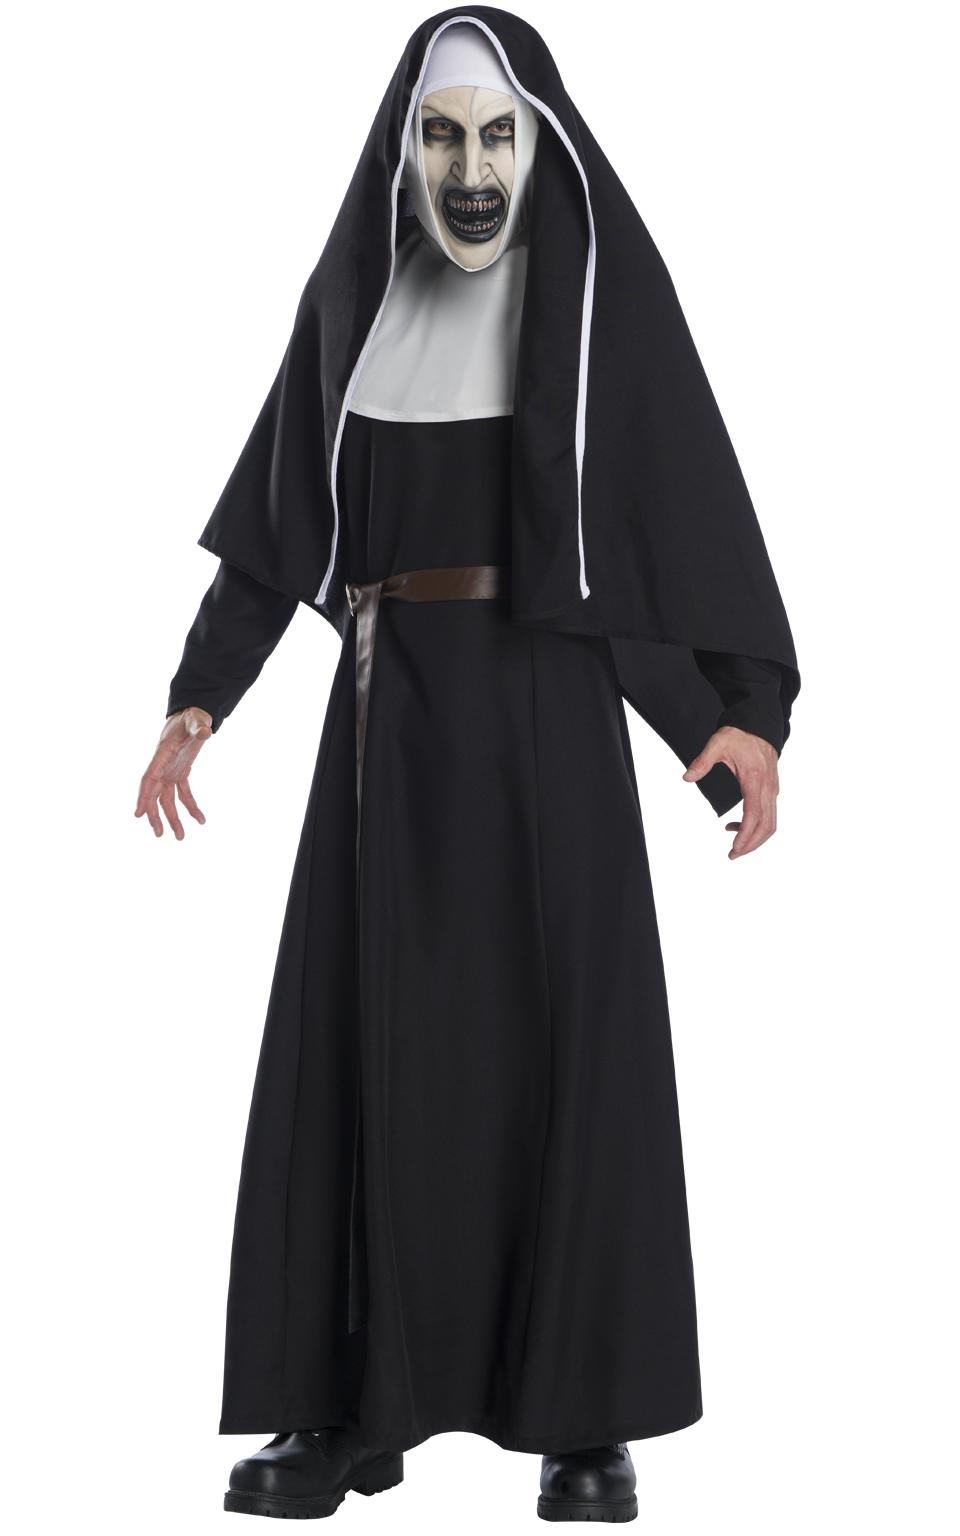 The Nun Costume with Mask